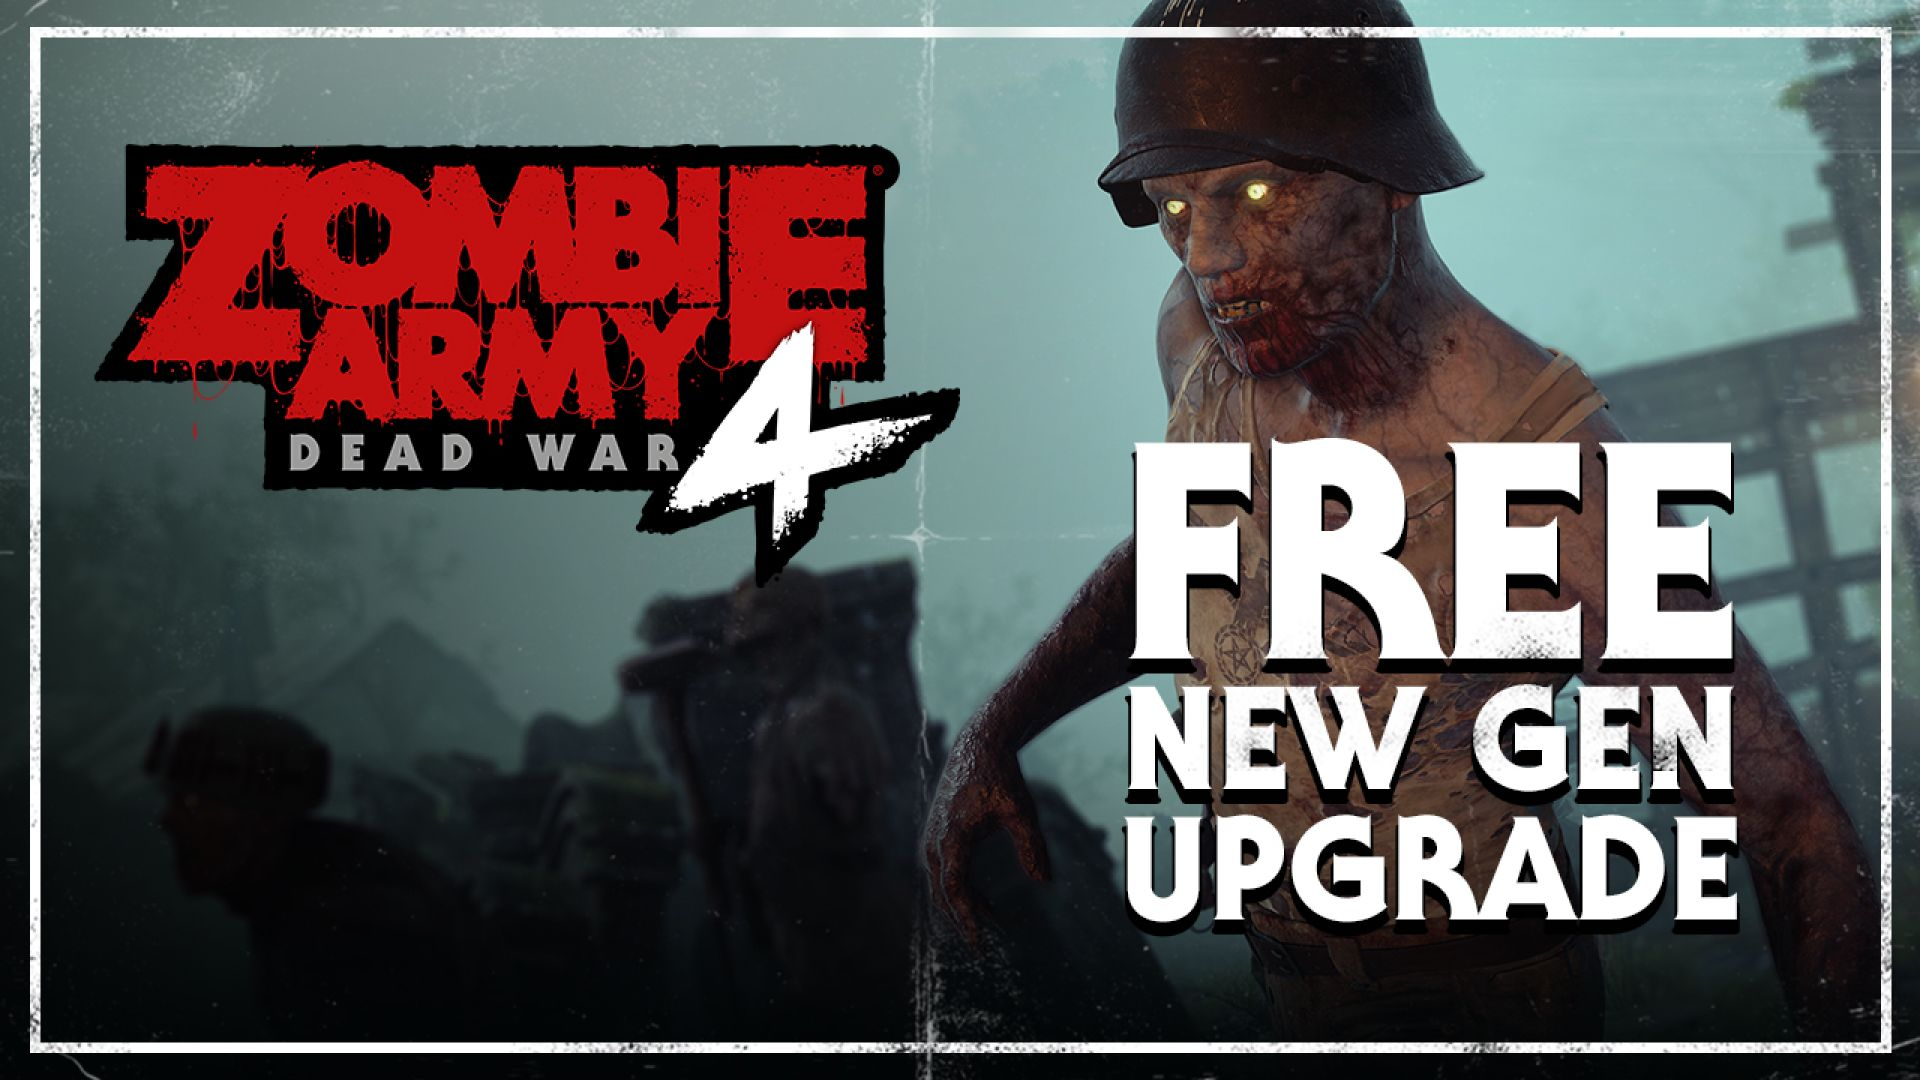 Zombie Army 4: Dead War Free Xbox Series X|S and PS5 Upgrade Boosts FPS and Resolution